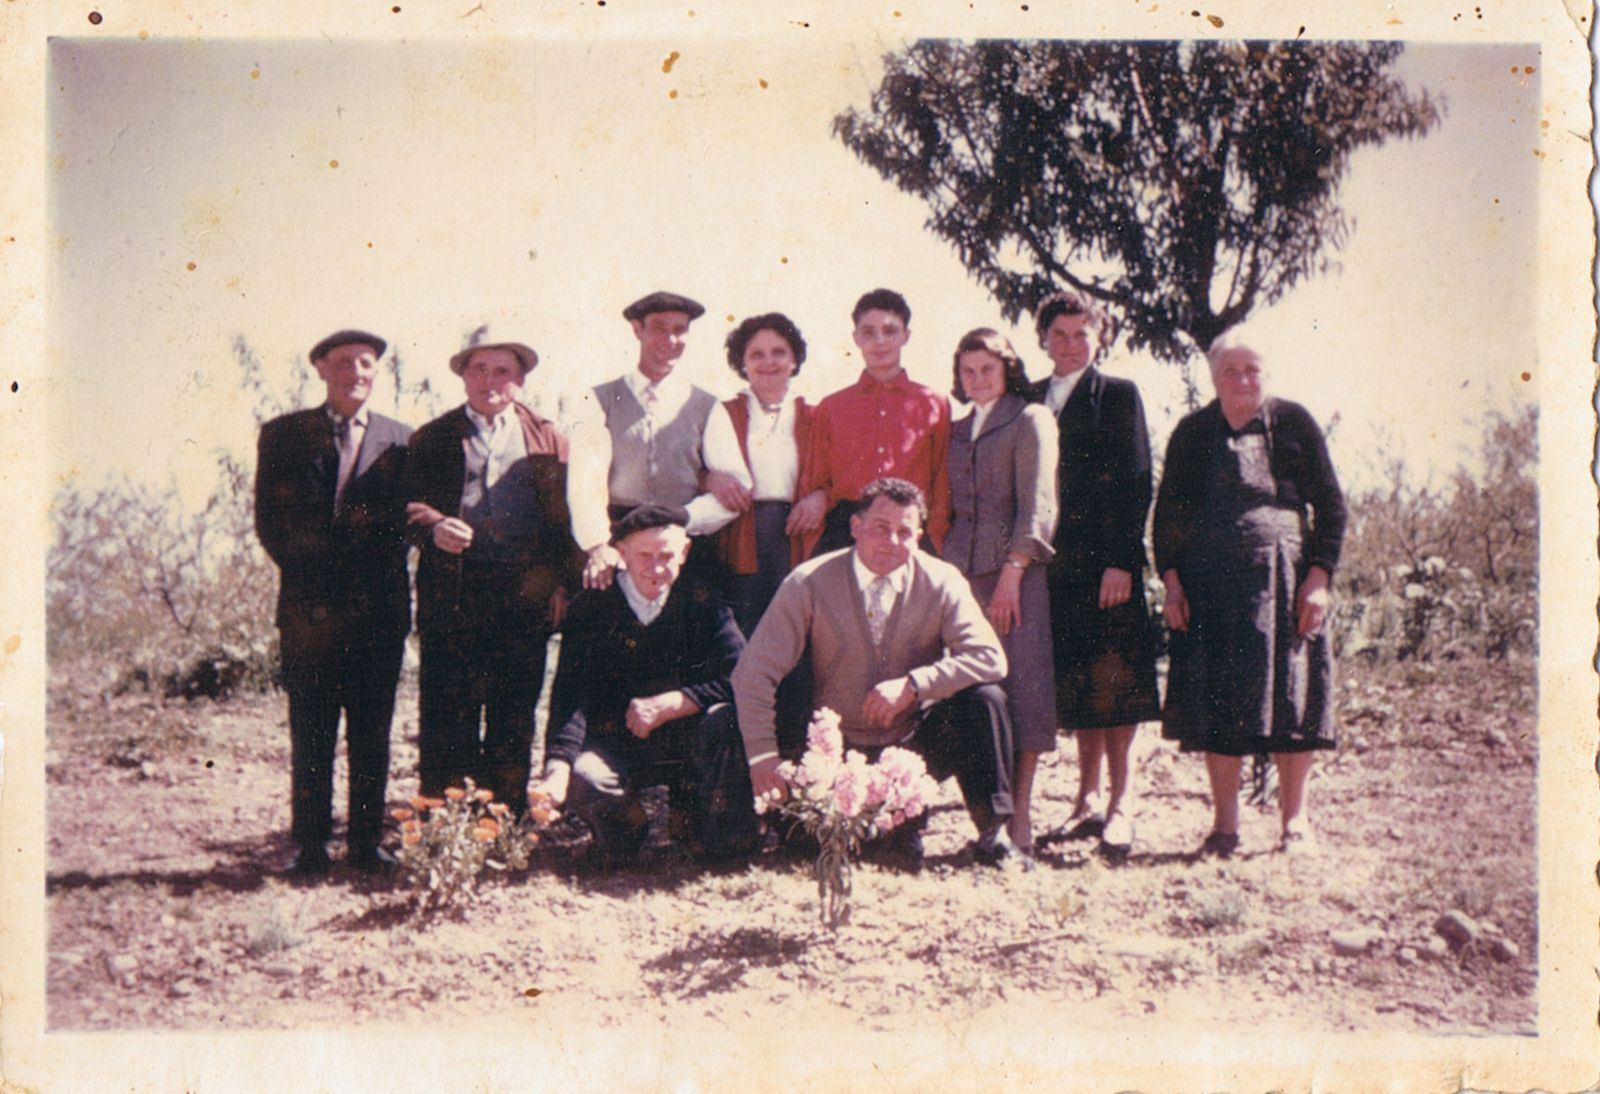 la famille Paolpi à Bel-Air en1965 (photo couleur), Paolo et Domenica Paolpi